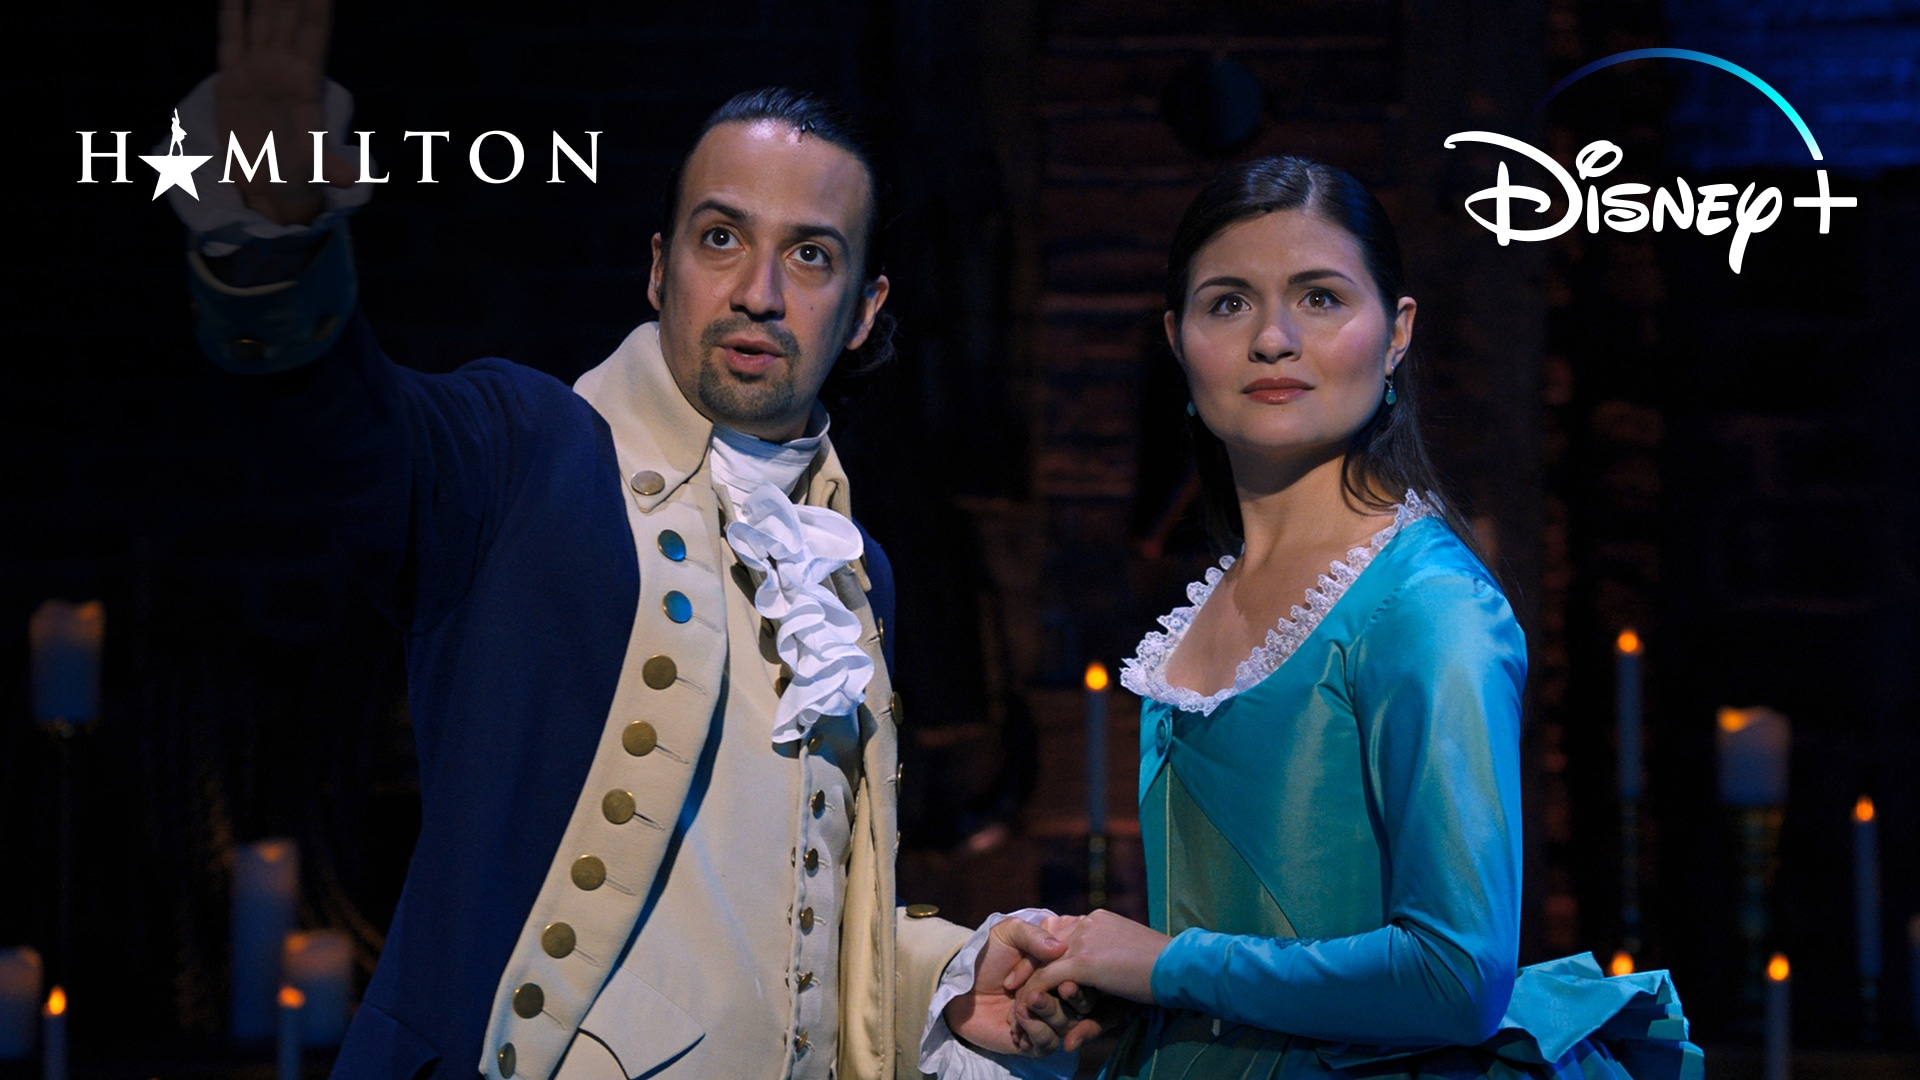 Lessons Learned From Hamilton | Disney+